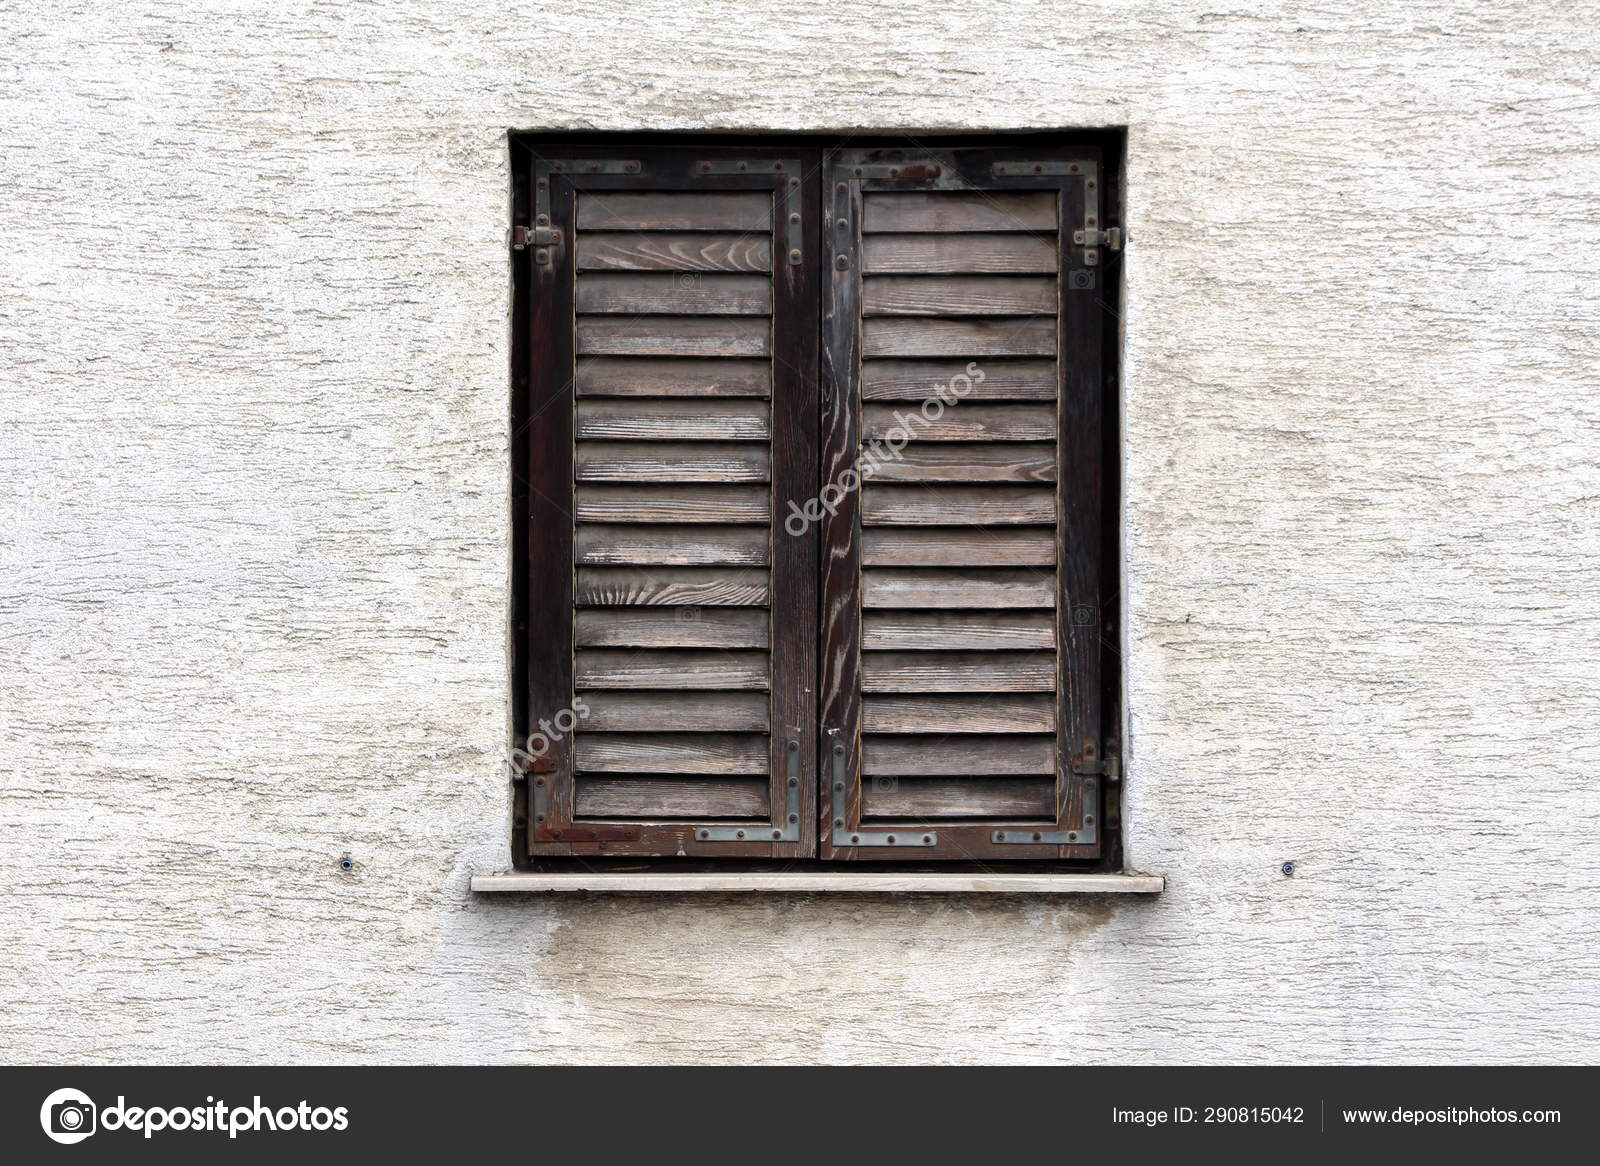 Closed Dilapidated Wooden Window Blinds Faded Color Rusted Metal Hinges Stock Photo C Hecos 290815042